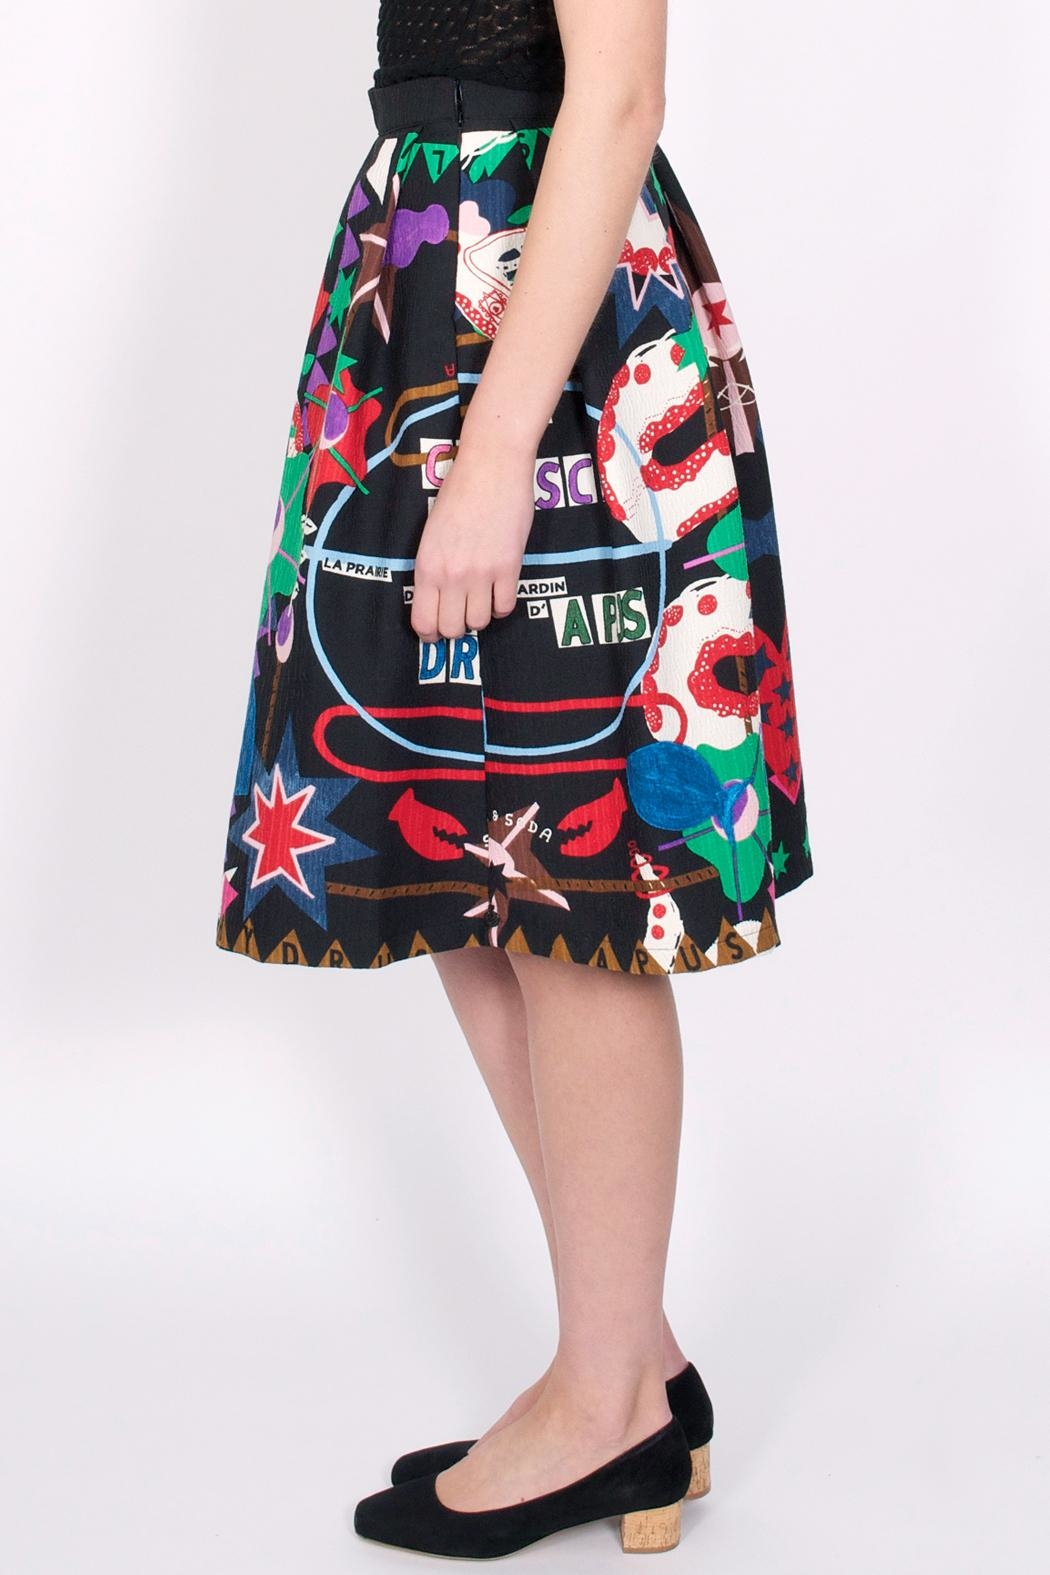 49073dcd7a Maison Scotch Flaring Printed Skirt from Williamsburg by Life ...